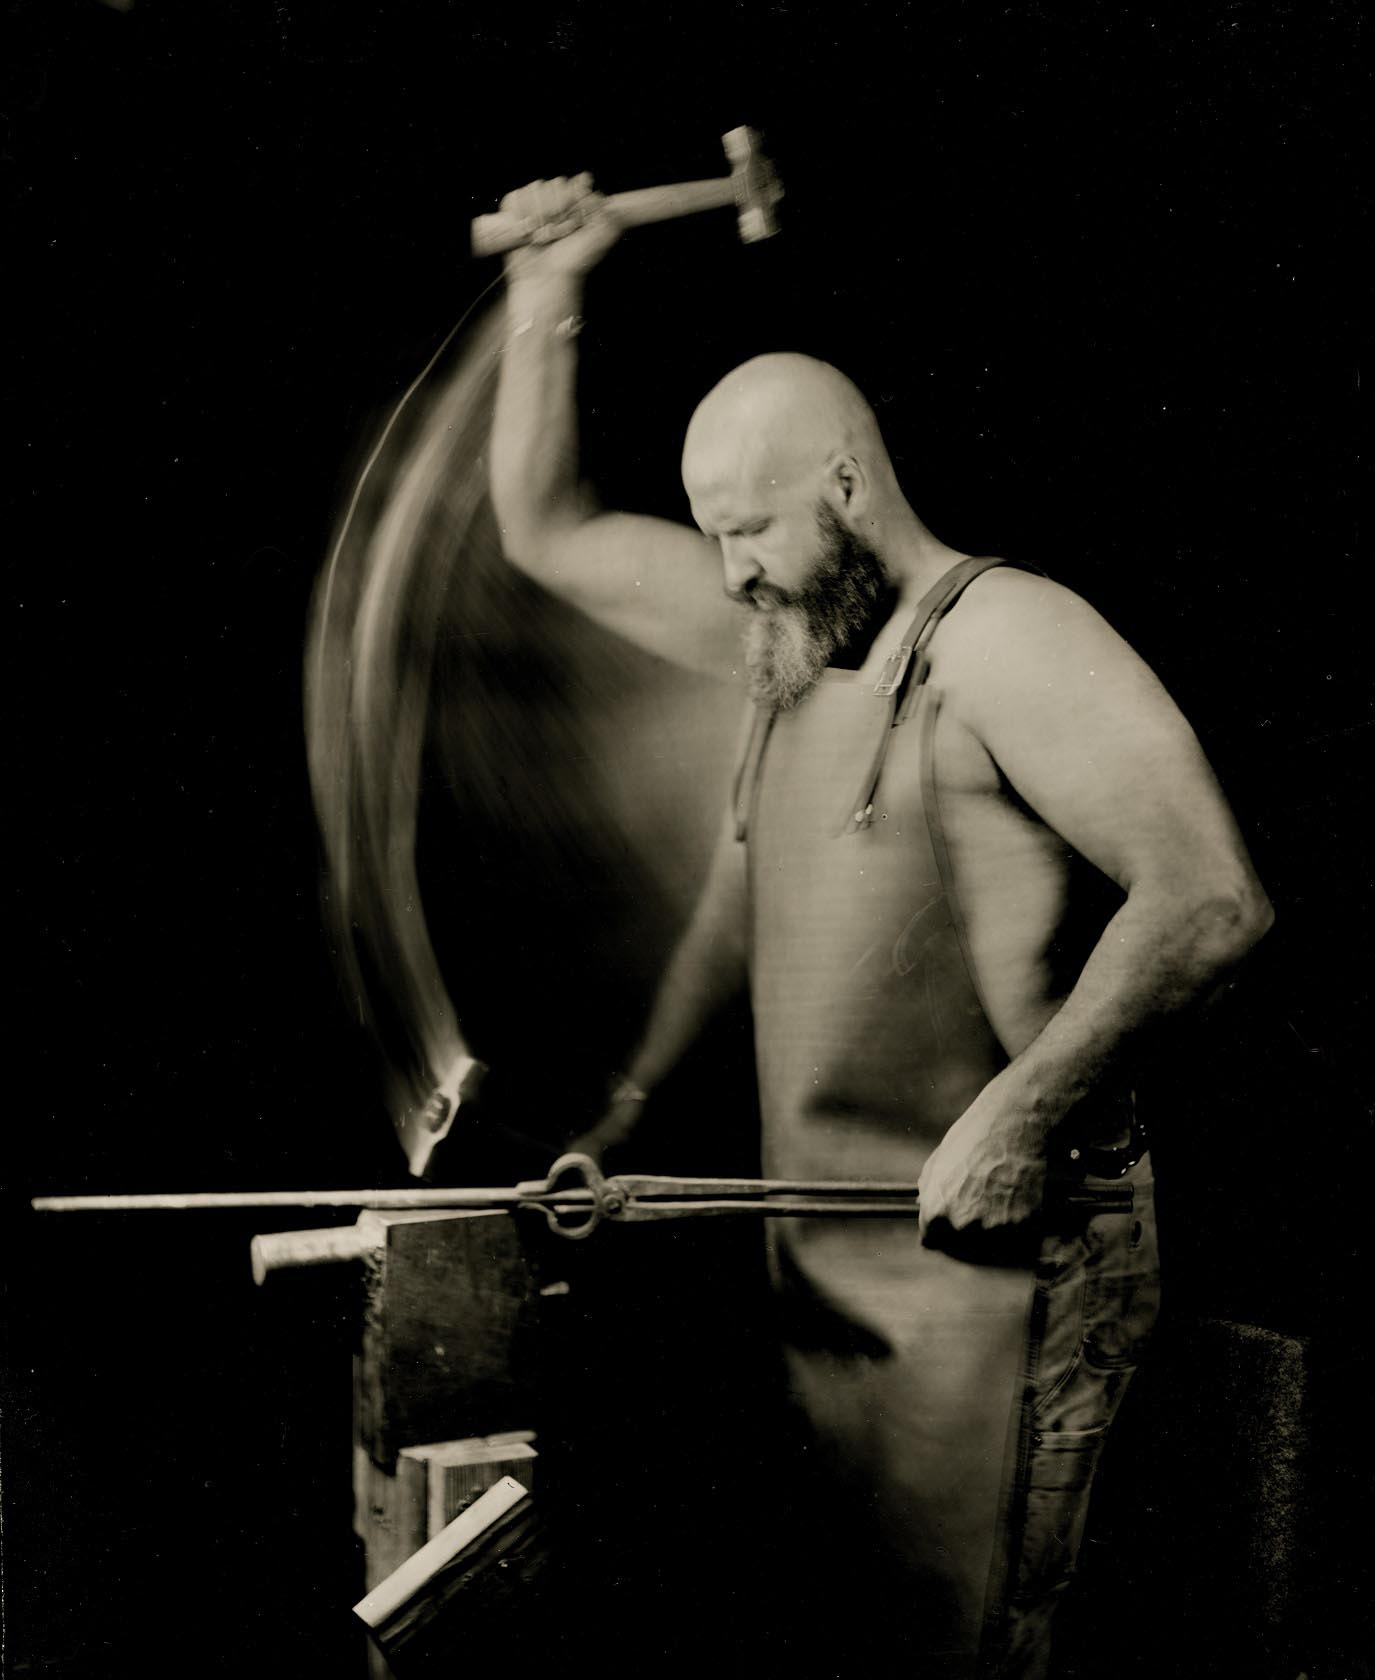 Study of a Blacksmith's Downward Hammer Strike - By:Shane Balkowitsch  http://sharoncol.balkowitsch.com/wetplate.htm